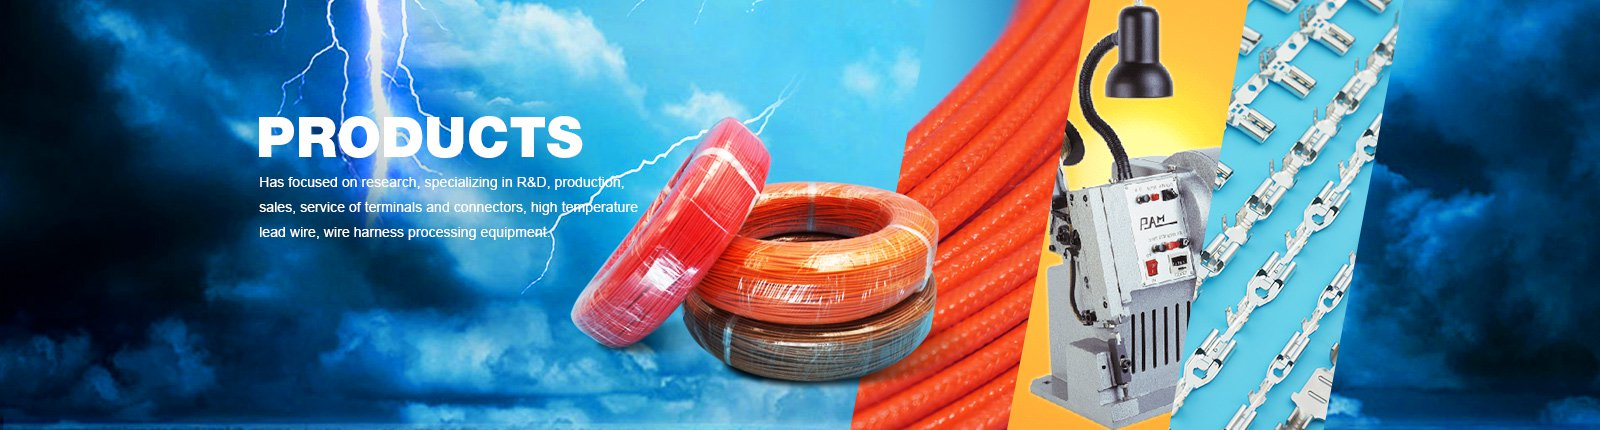 High Temperature Wire - POWER ACT ENTERPRISES LIMITED